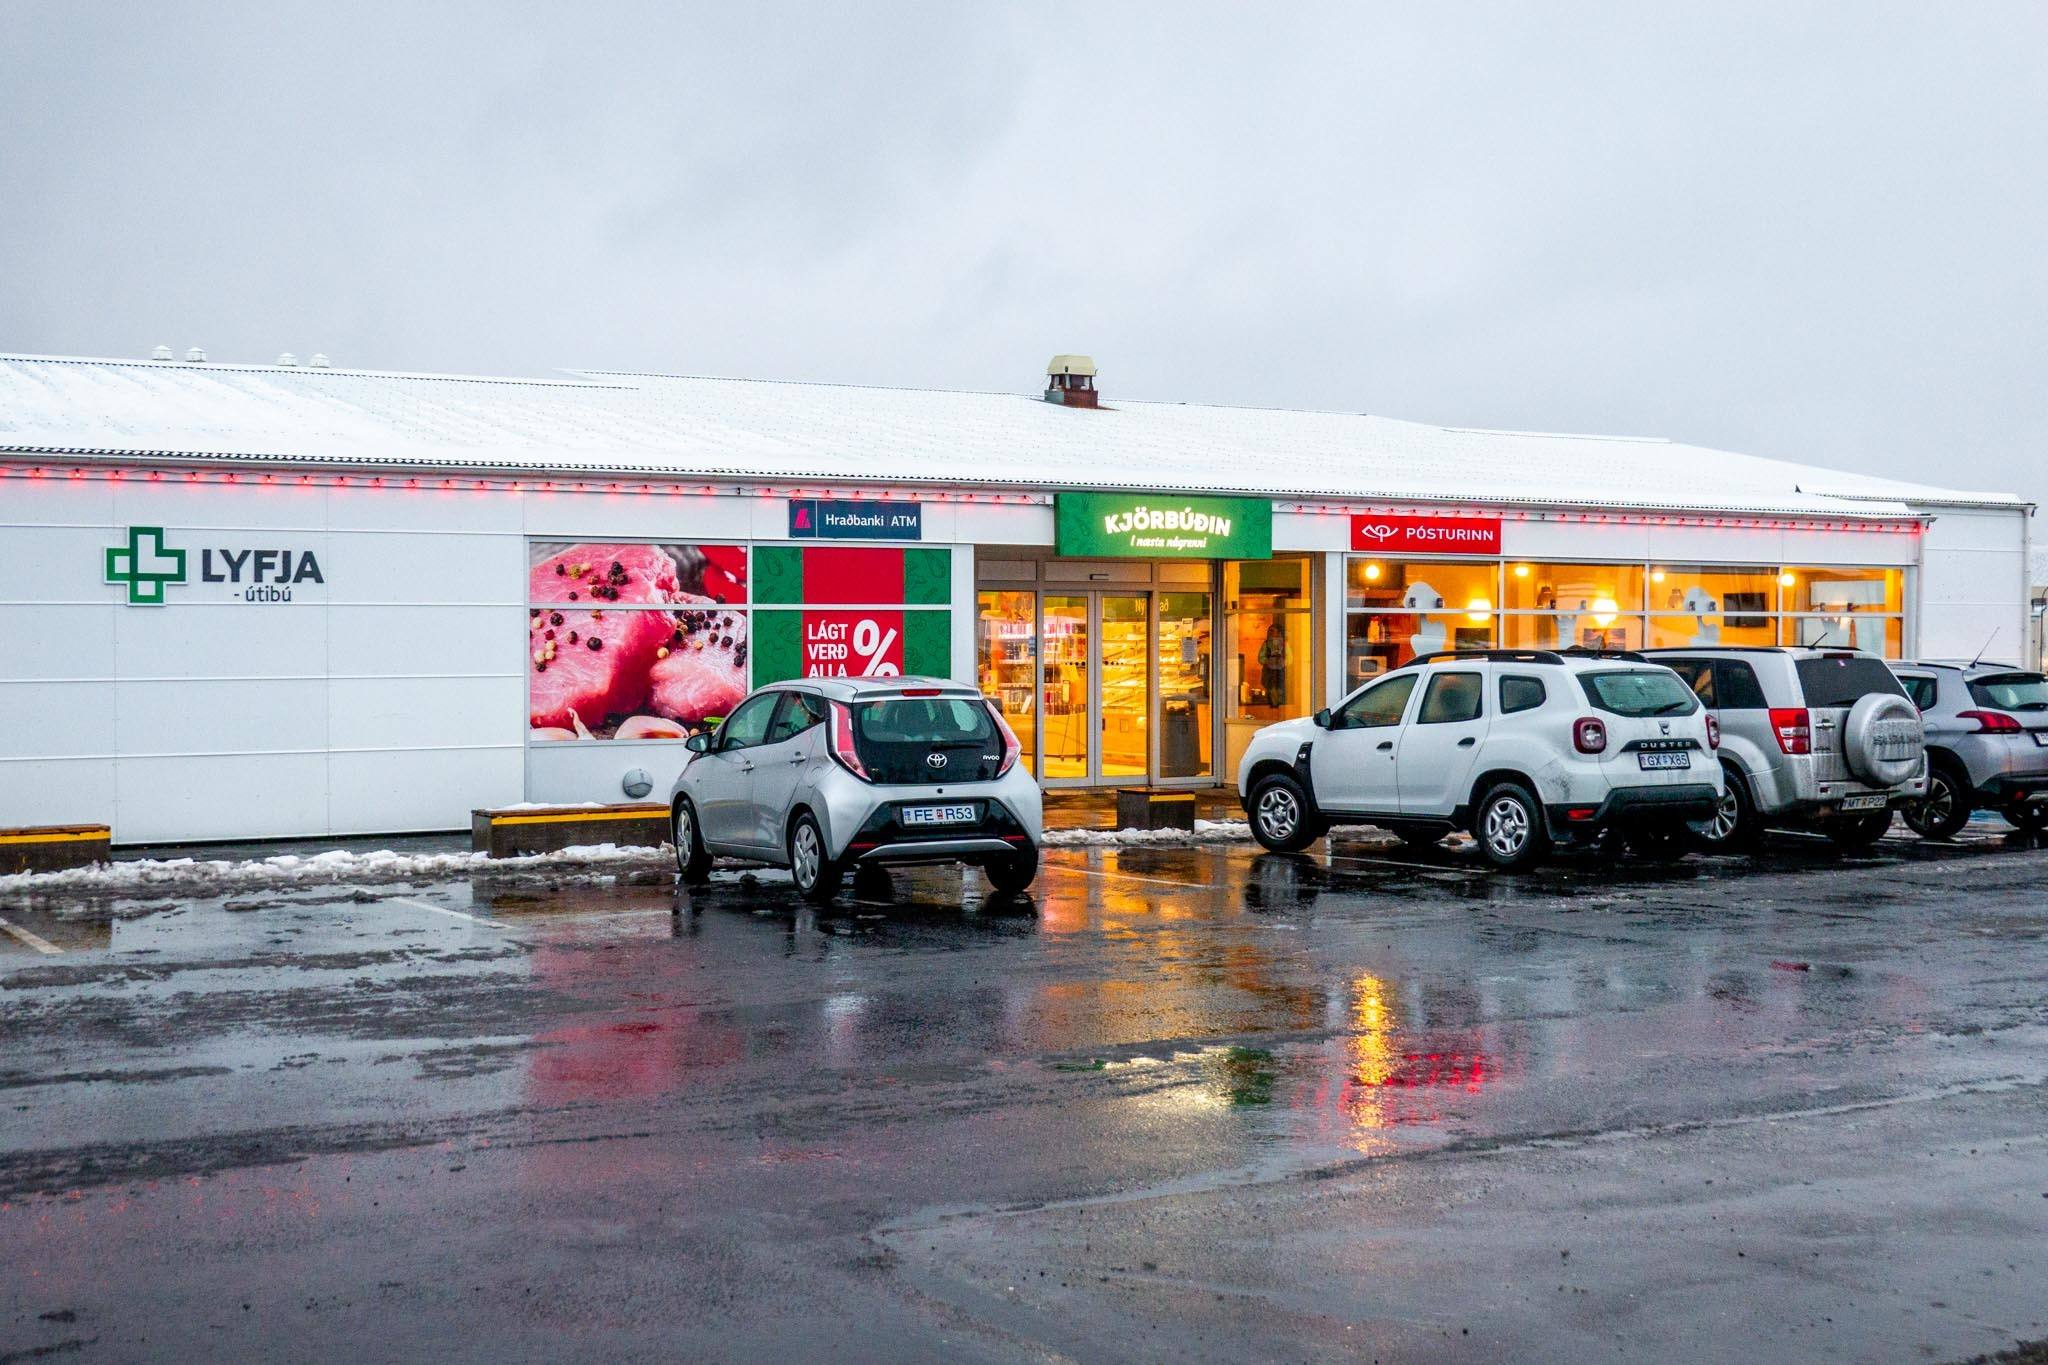 Some Iceland gas stations have full grocery stores, pharmacies, liquor stores, and even a restaurant.